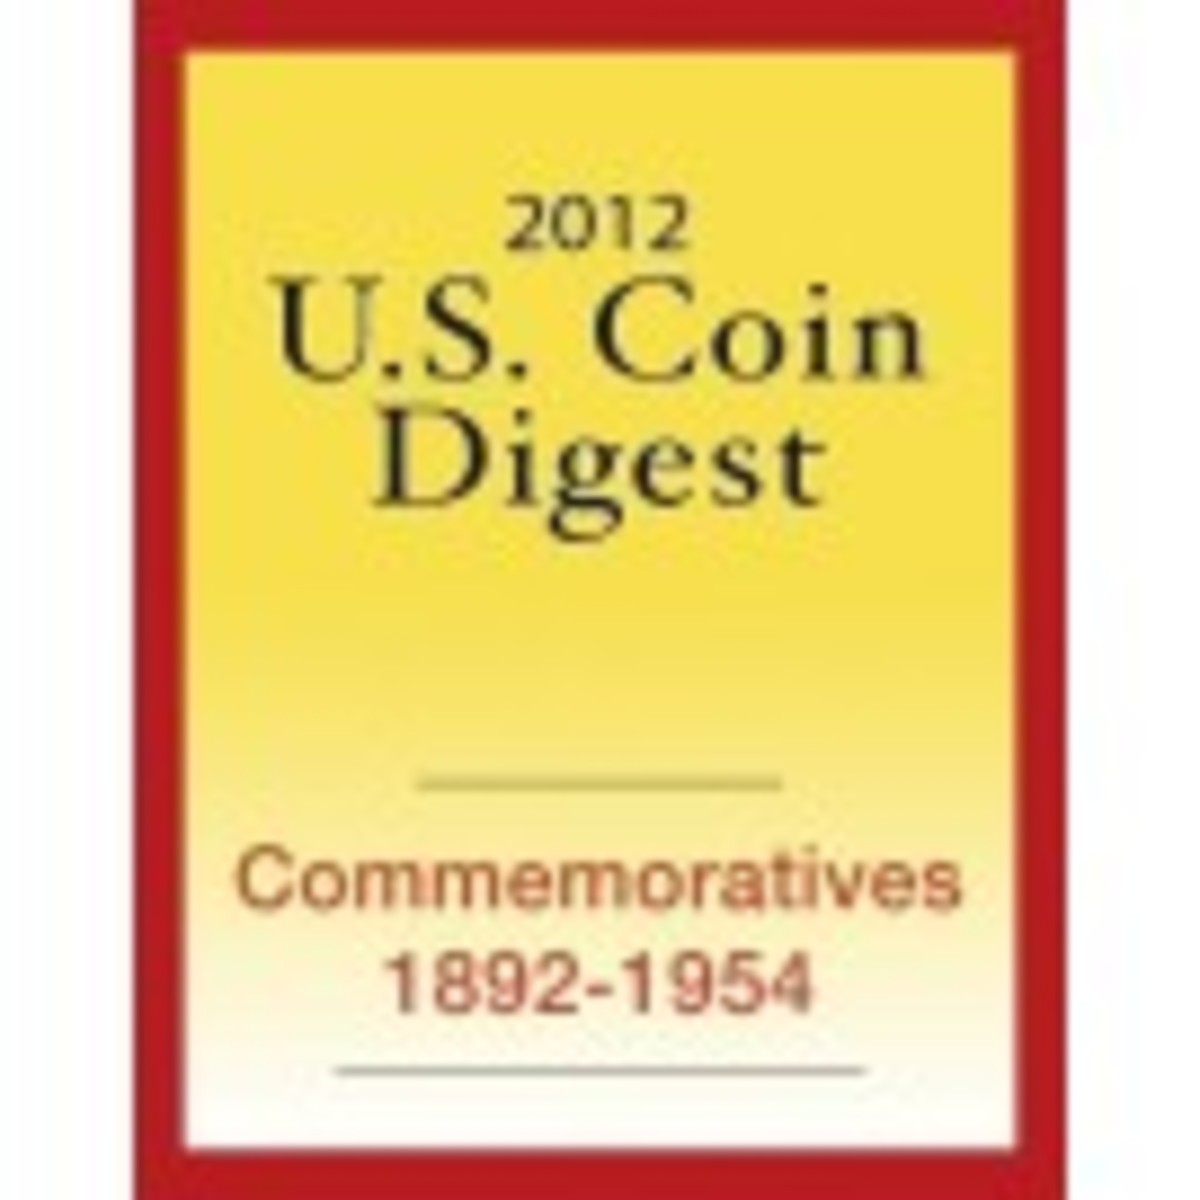 2012 U.S. Coin Digest: Commemorative Coins 1892-1954